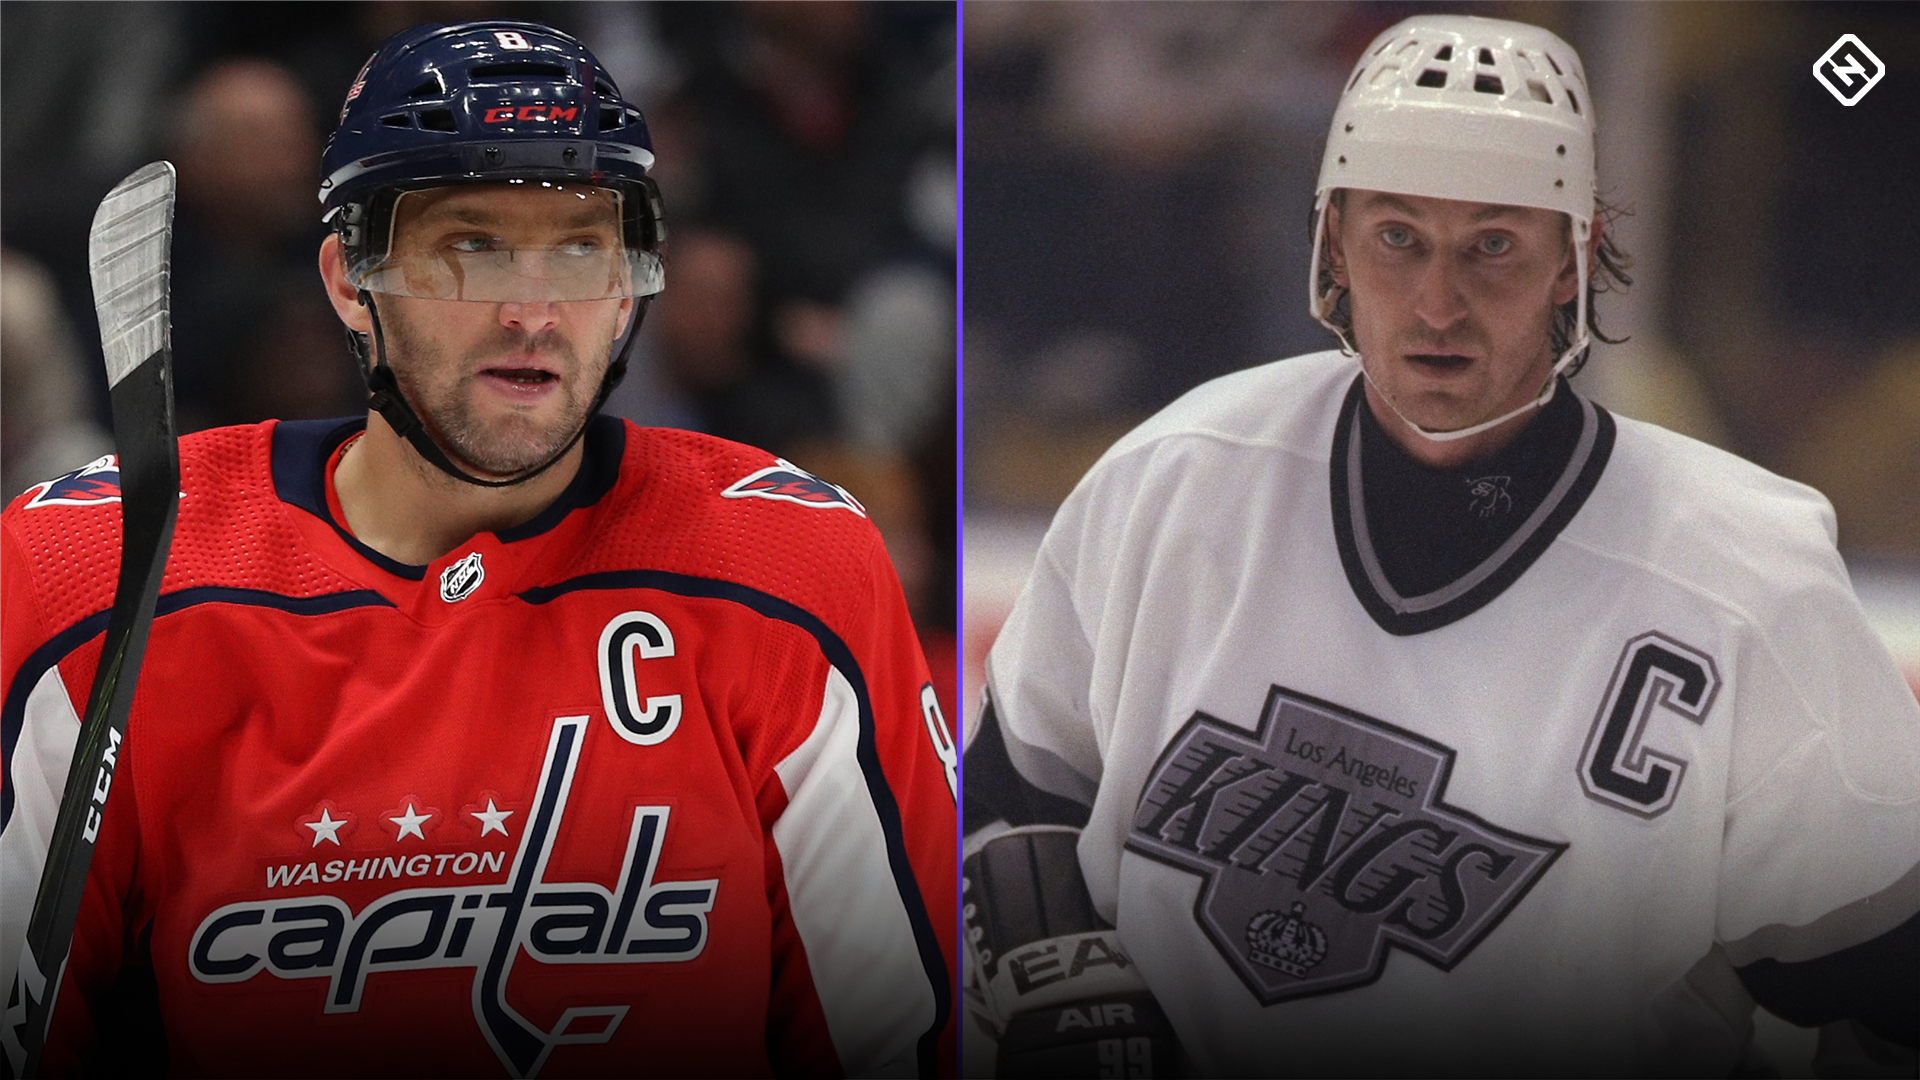 Wayne Gretzky rooting for Alex Ovechkin to break his goals record